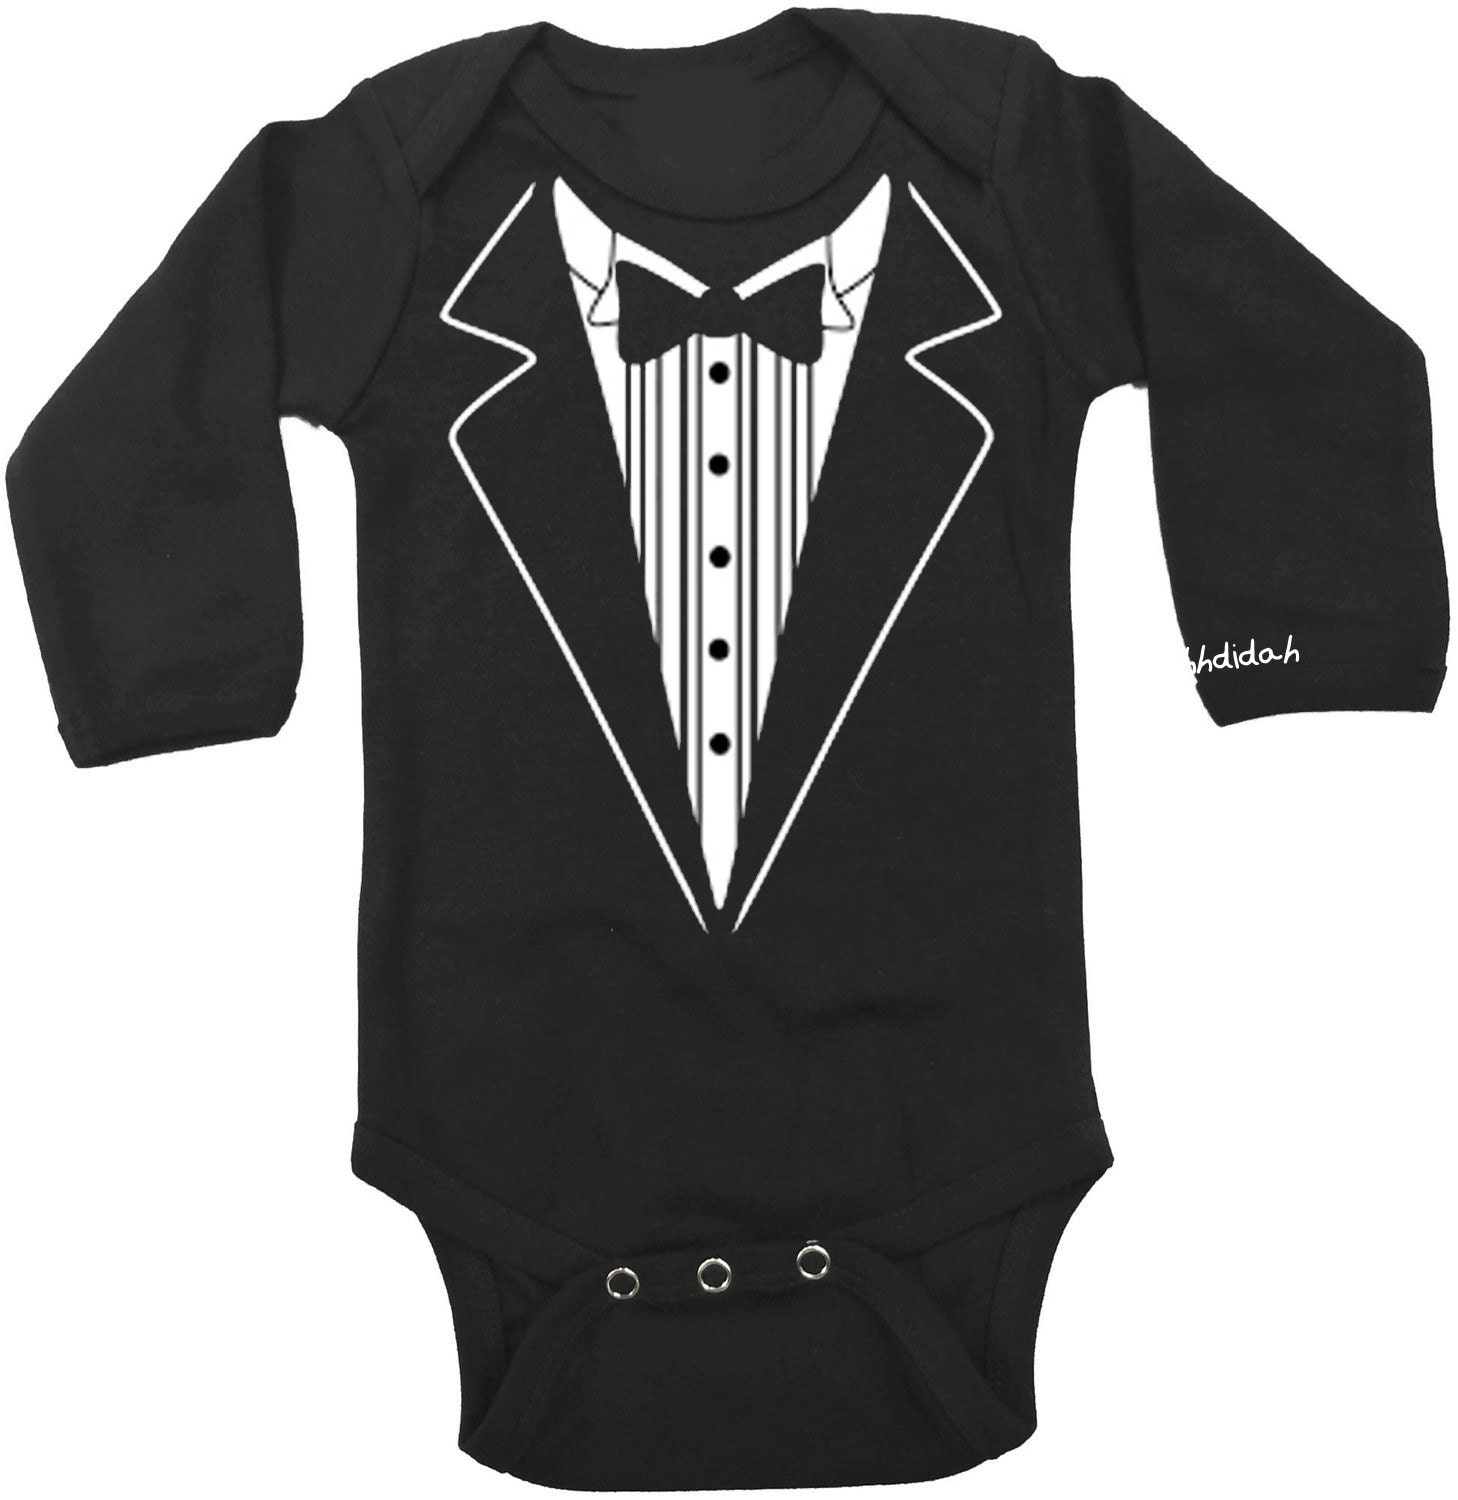 Your baby boy will look irresistibly cool in this tuxedo baby one piece when you walk in the party. This baby tuxedo shirt has a red bow tie and cummerbund. Cool baby clothes like this tux baby romper are more comfortable than dressing him in a button.